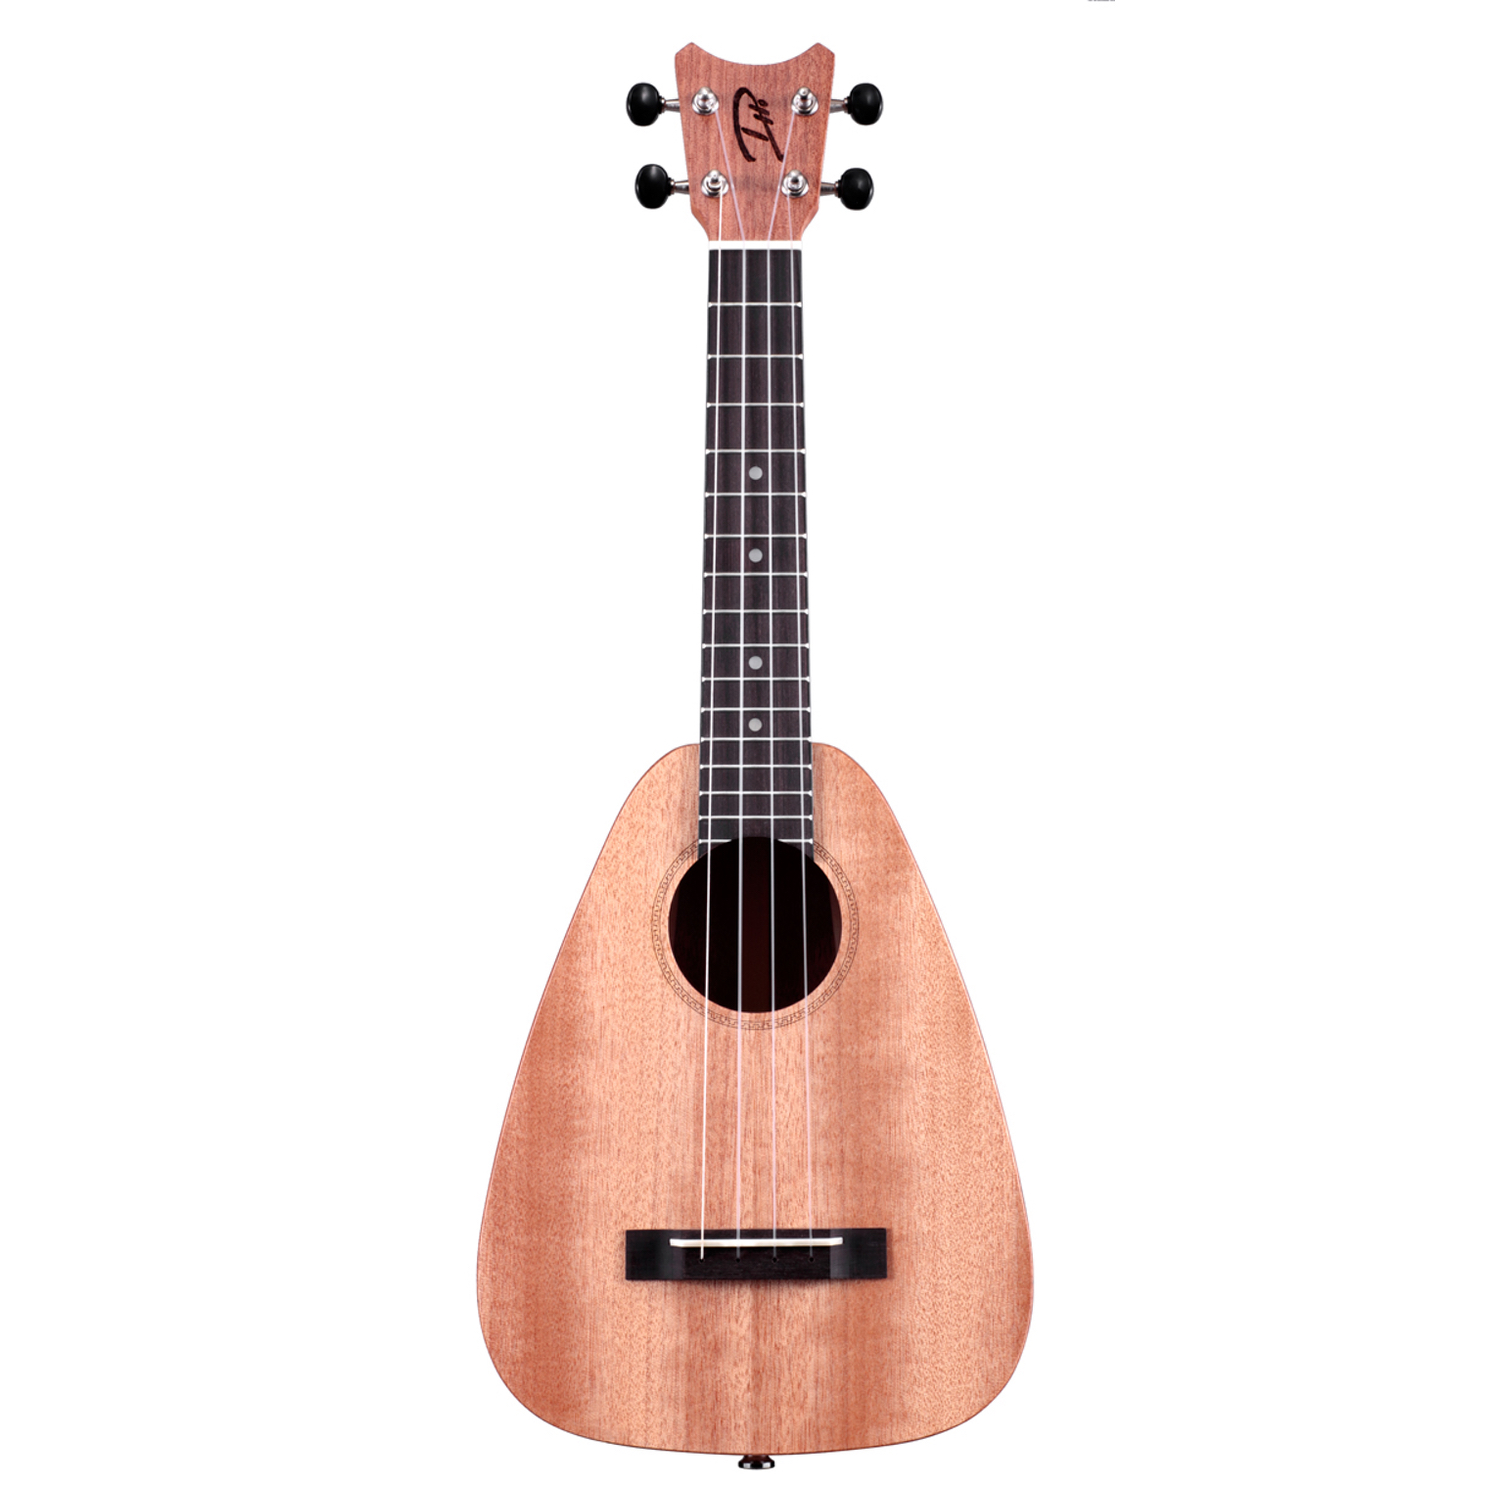 The Romero Creations® ST Concert (model RC-STL) 'ukulele